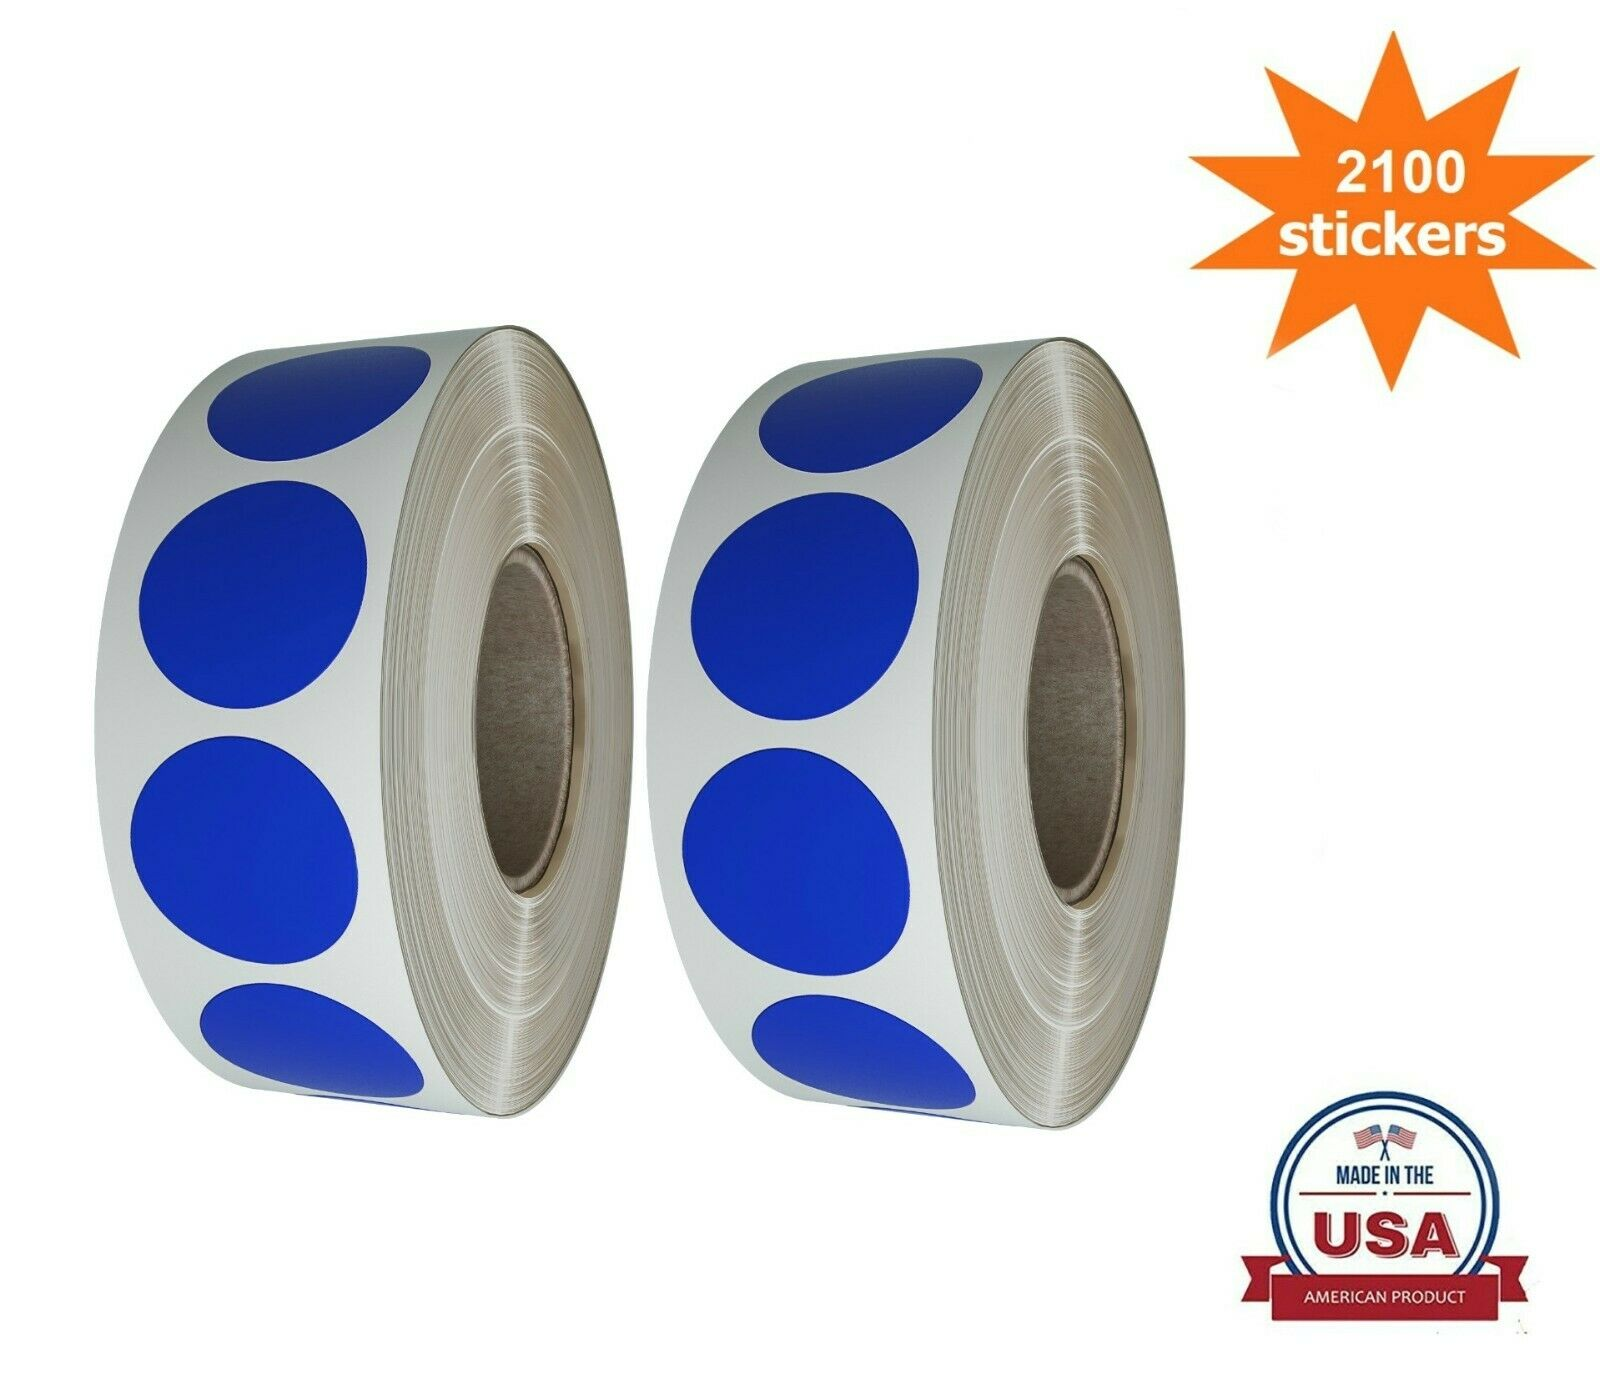 19MM Blue Color Coding Round Stickers 3//4 Inch 2100 Pack on 2 Rolls